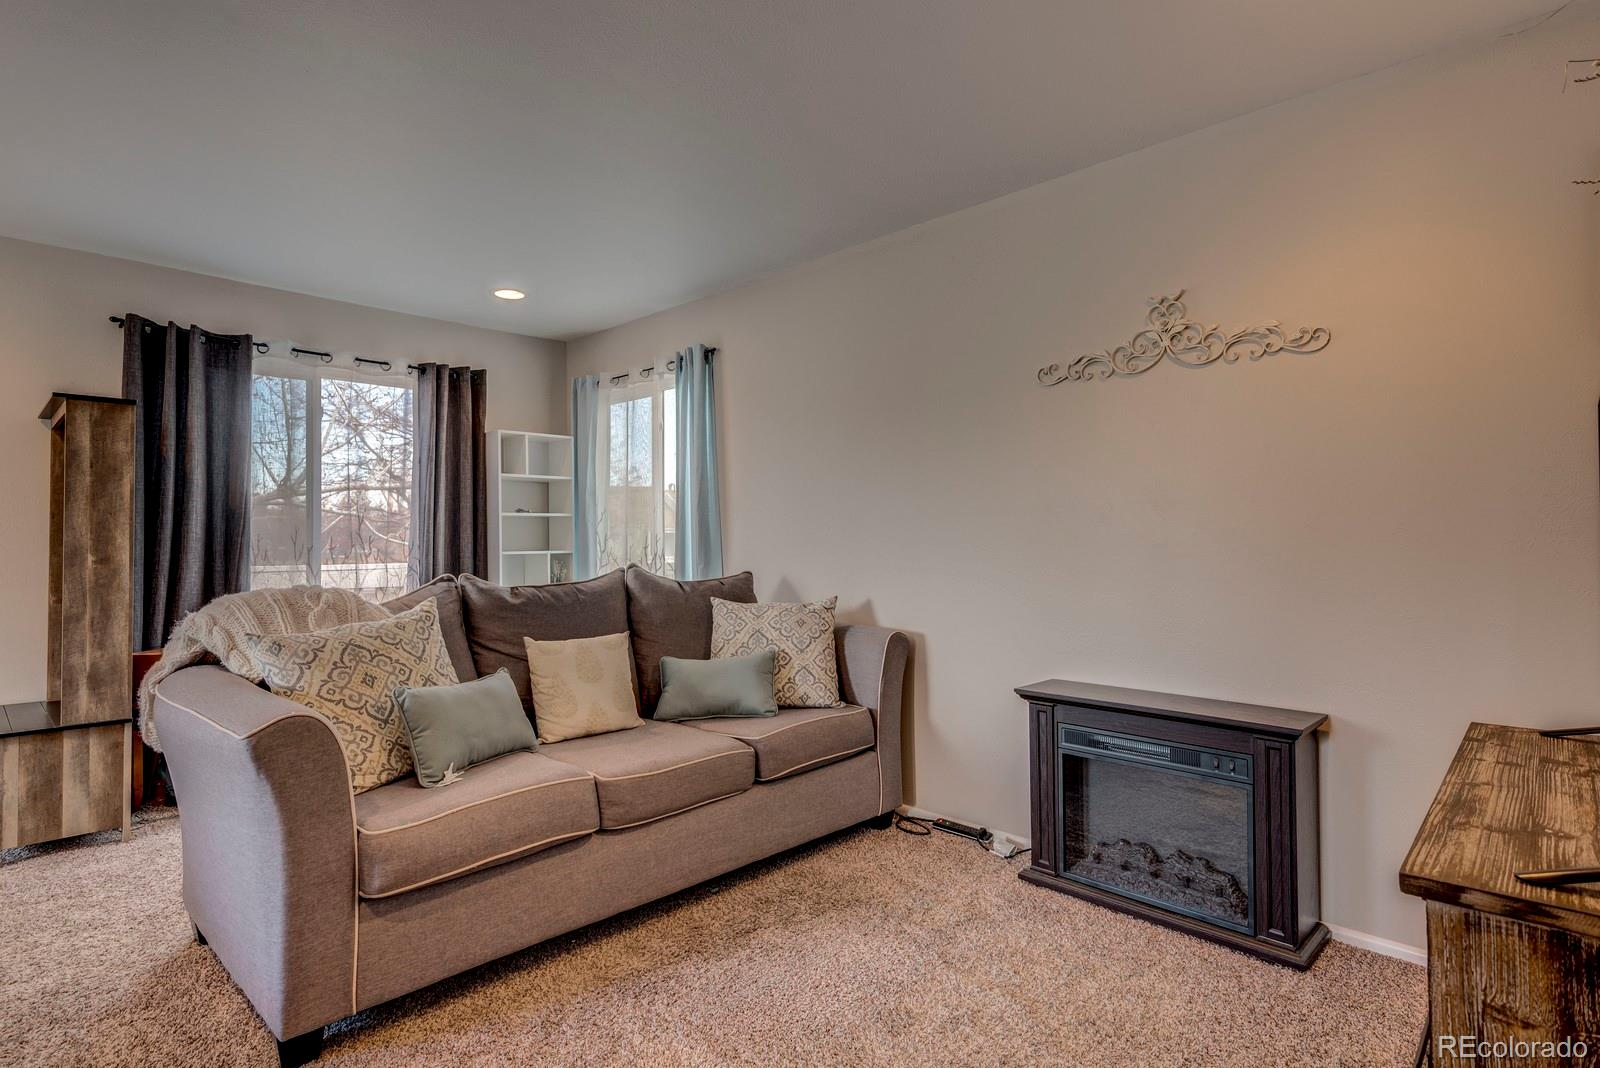 MLS# 2804784 - 2 - 8792 Chase Drive #16, Arvada, CO 80003